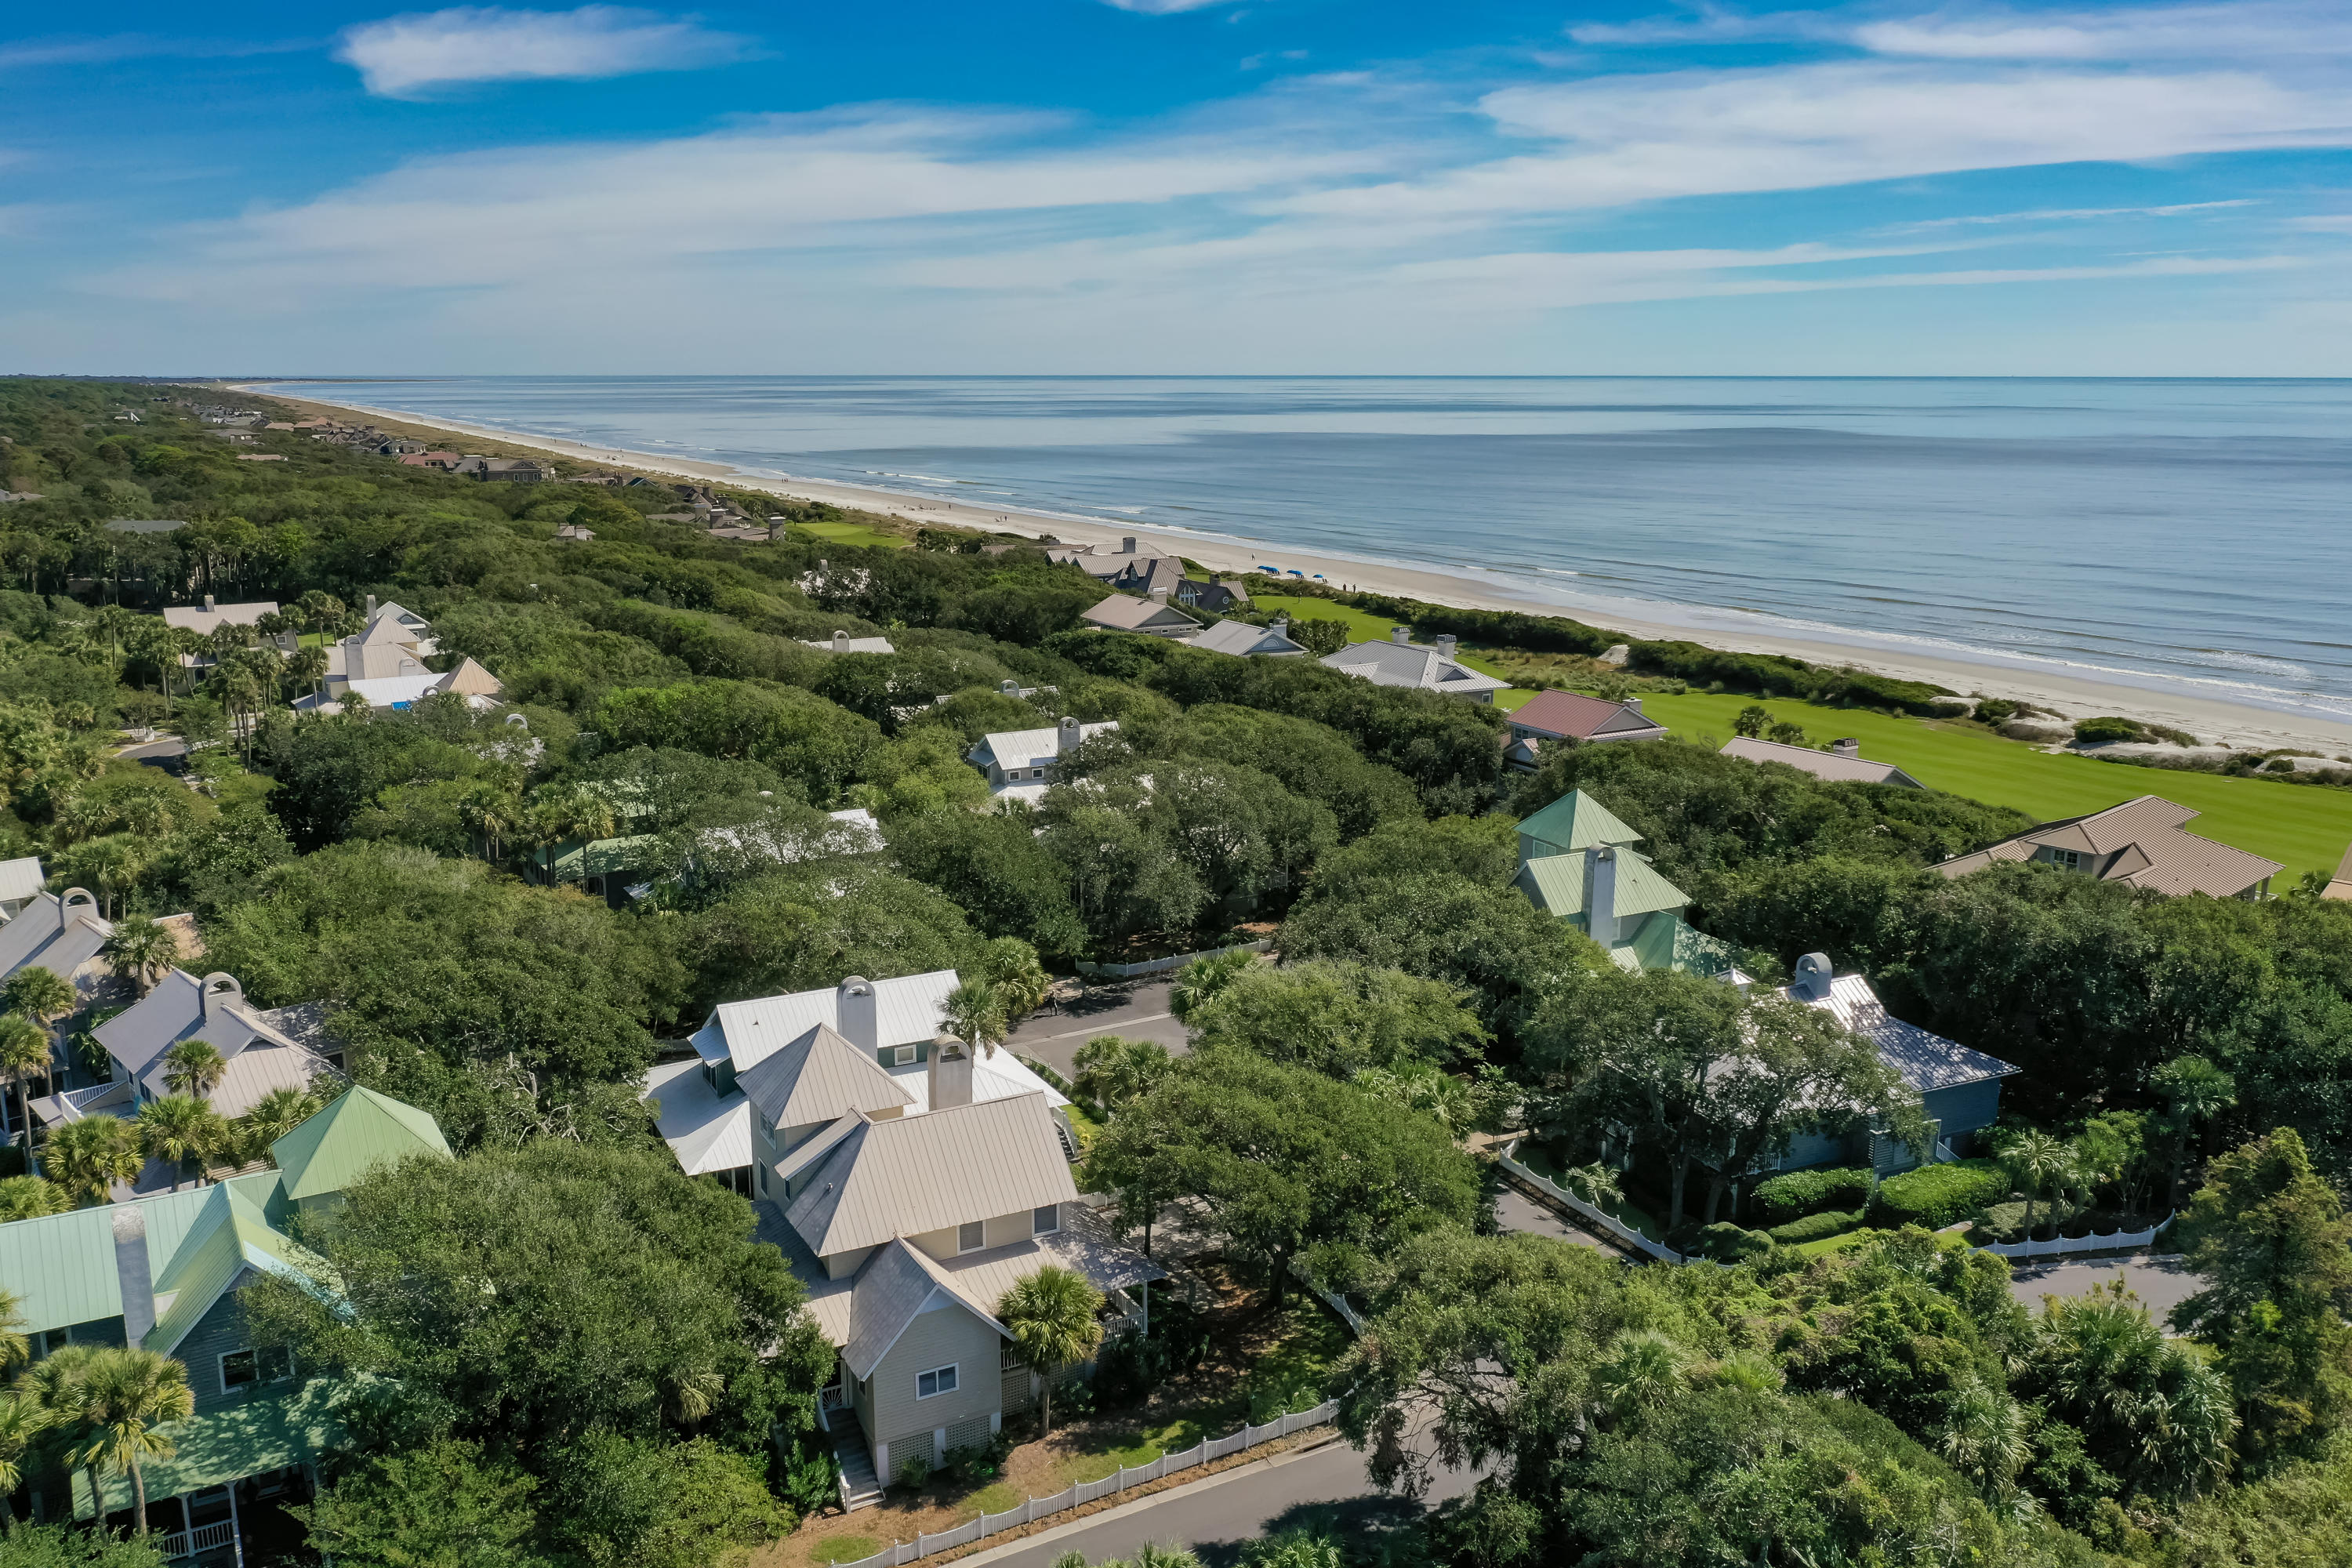 Kiawah Island Homes For Sale - 24 Atlantic Beach, Kiawah Island, SC - 26